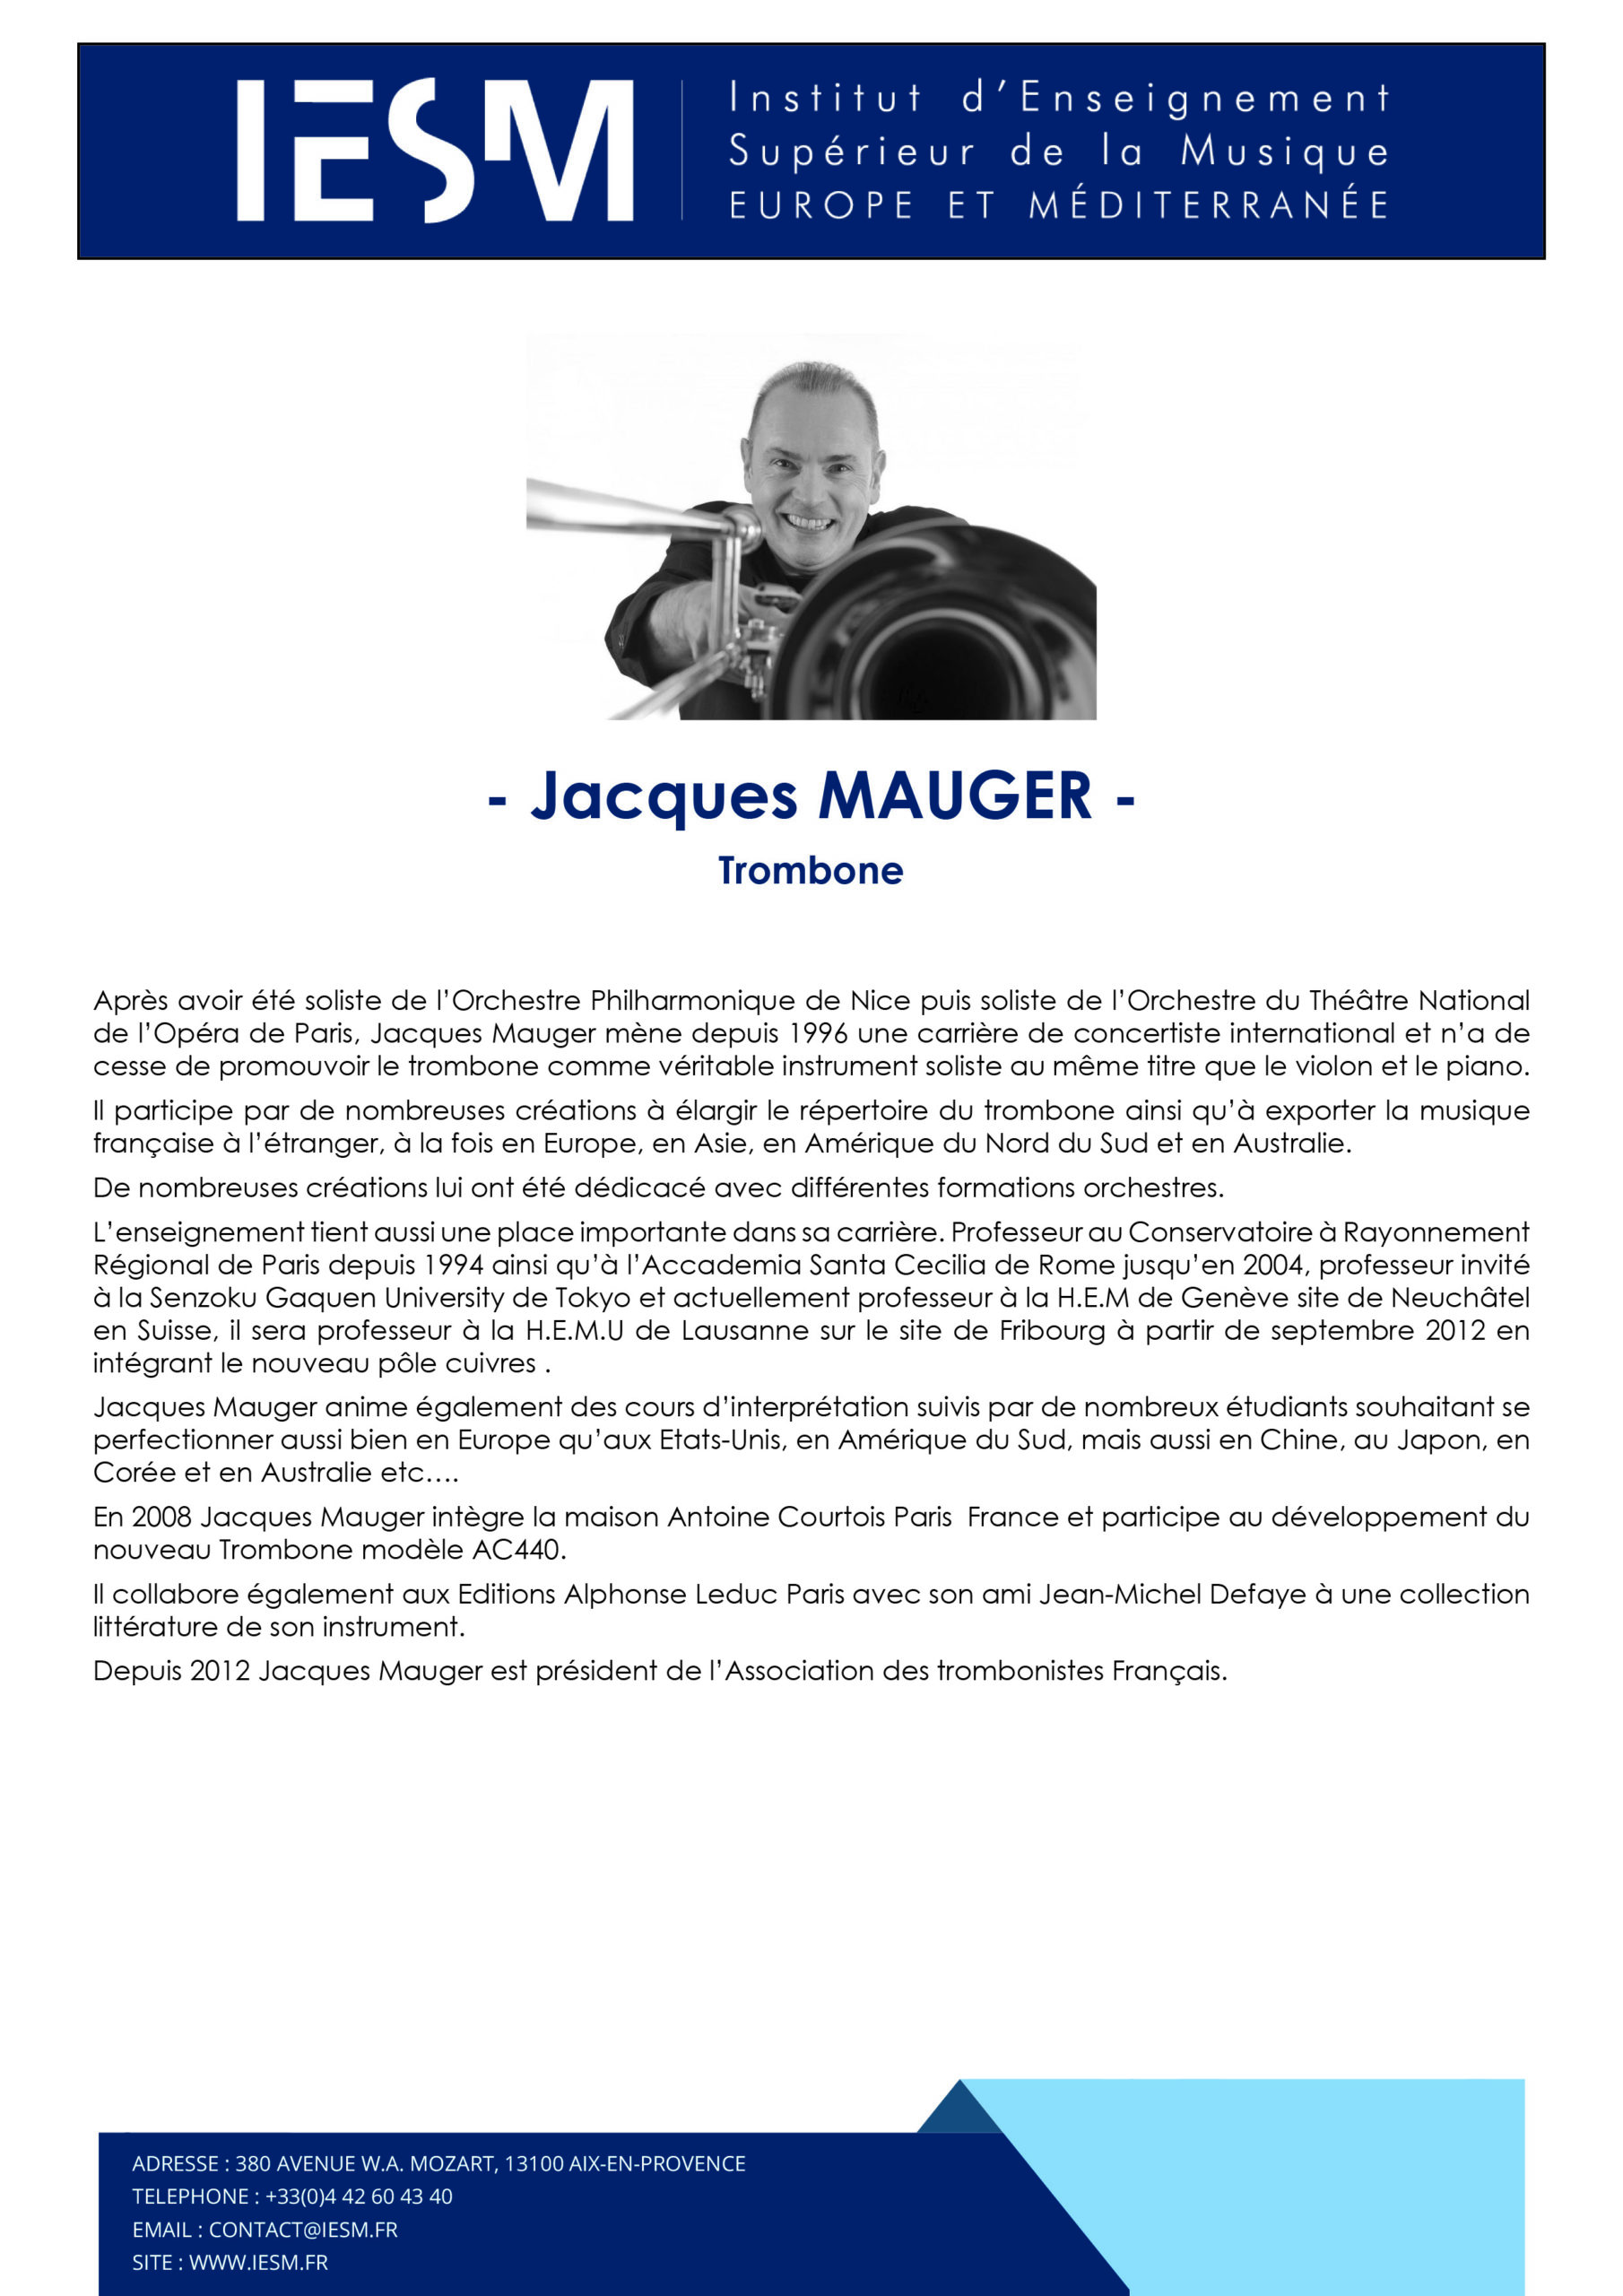 MAUGER Jacques scaled